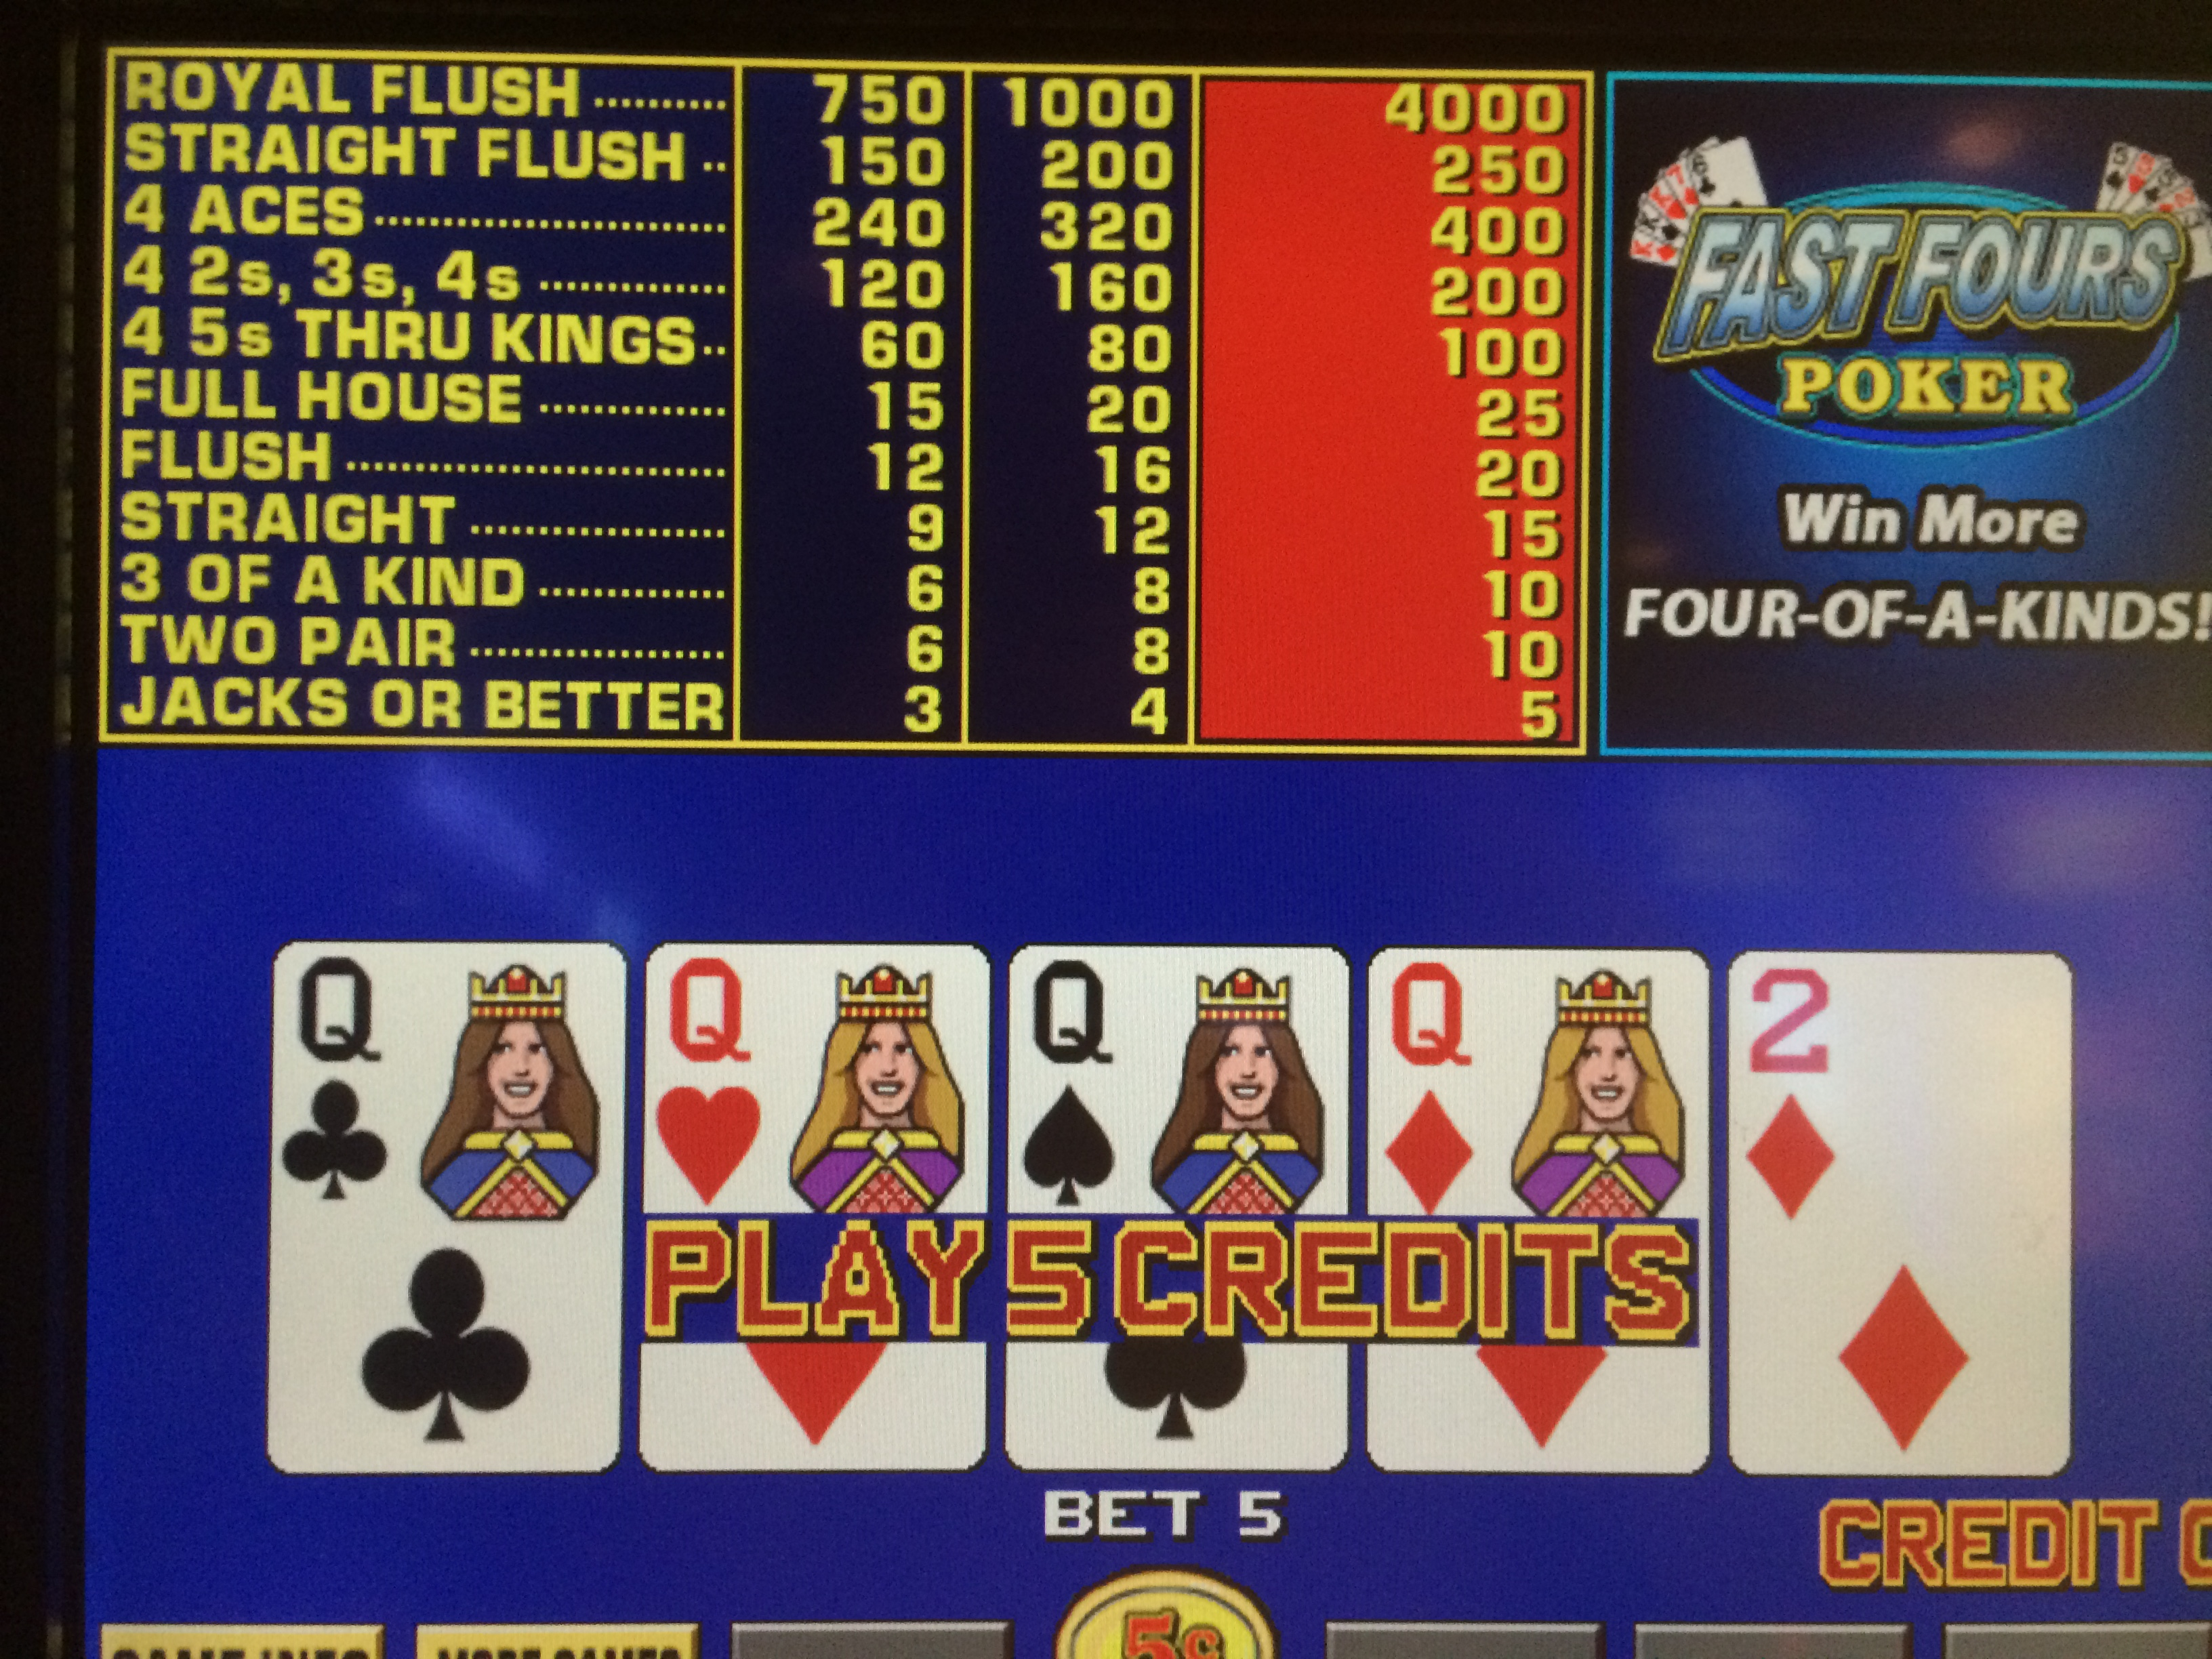 video poker jacks or better royal flush odds